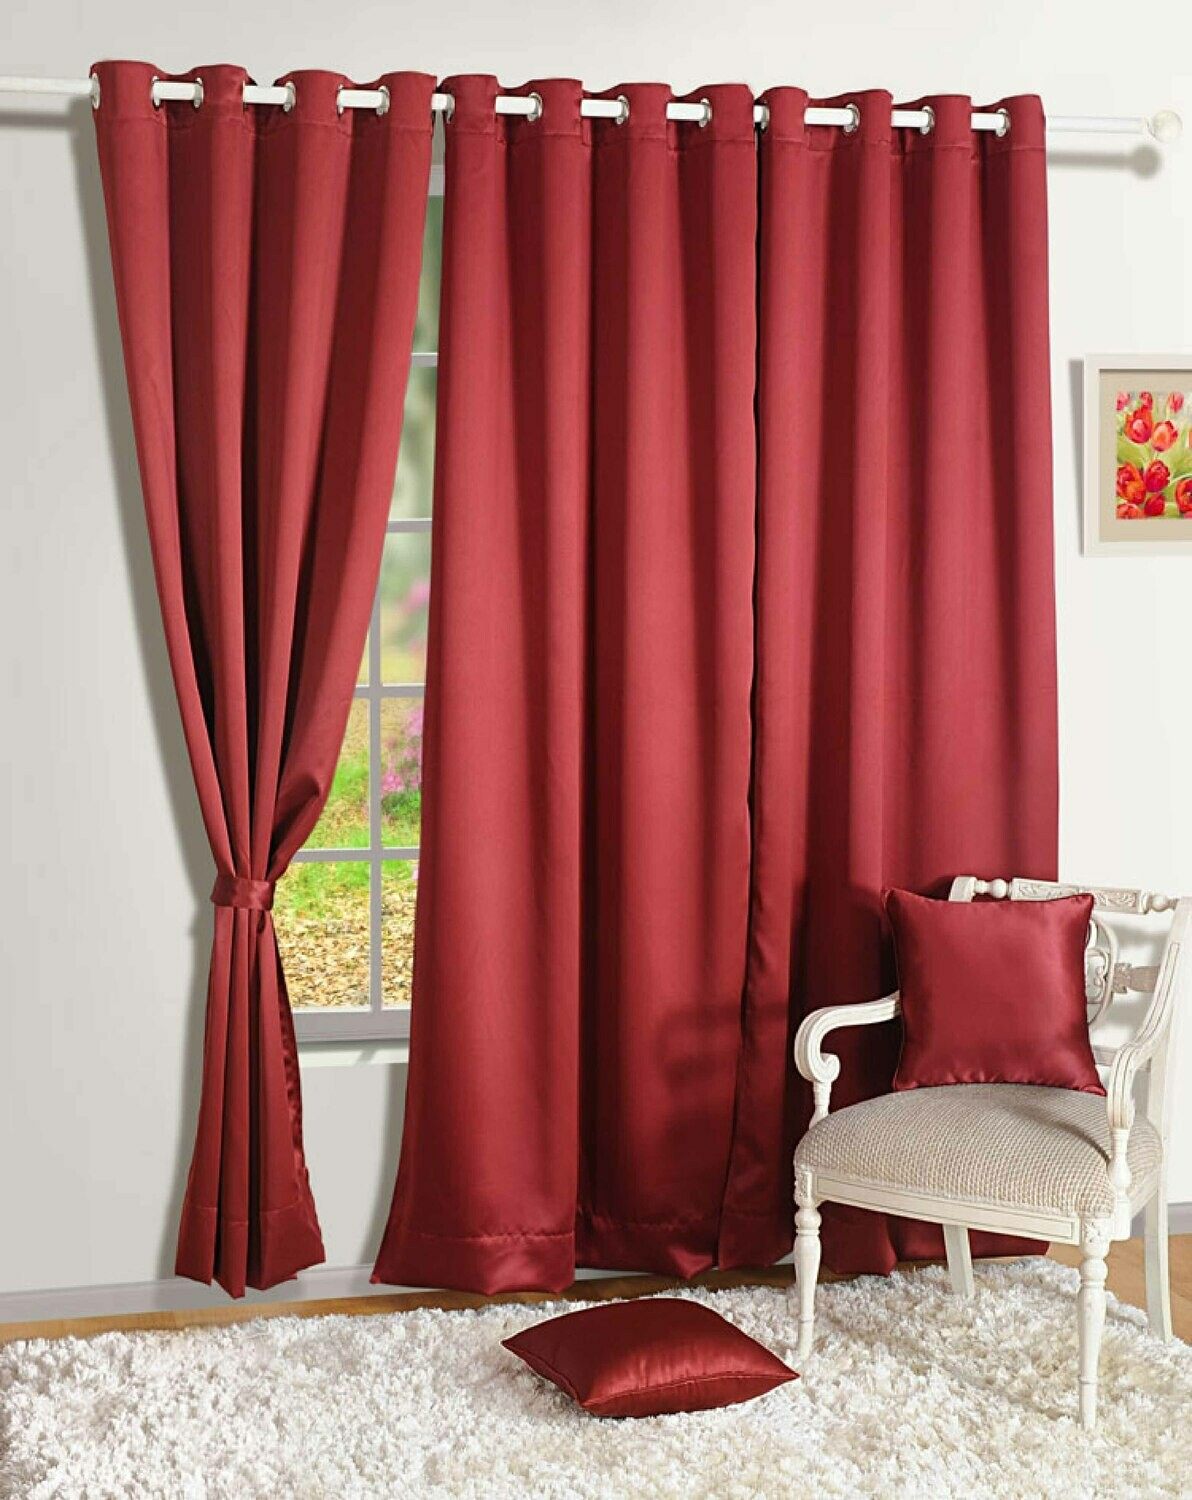 Swayam Maroon Colour Solid Blackout Eyelet Curtain for Window